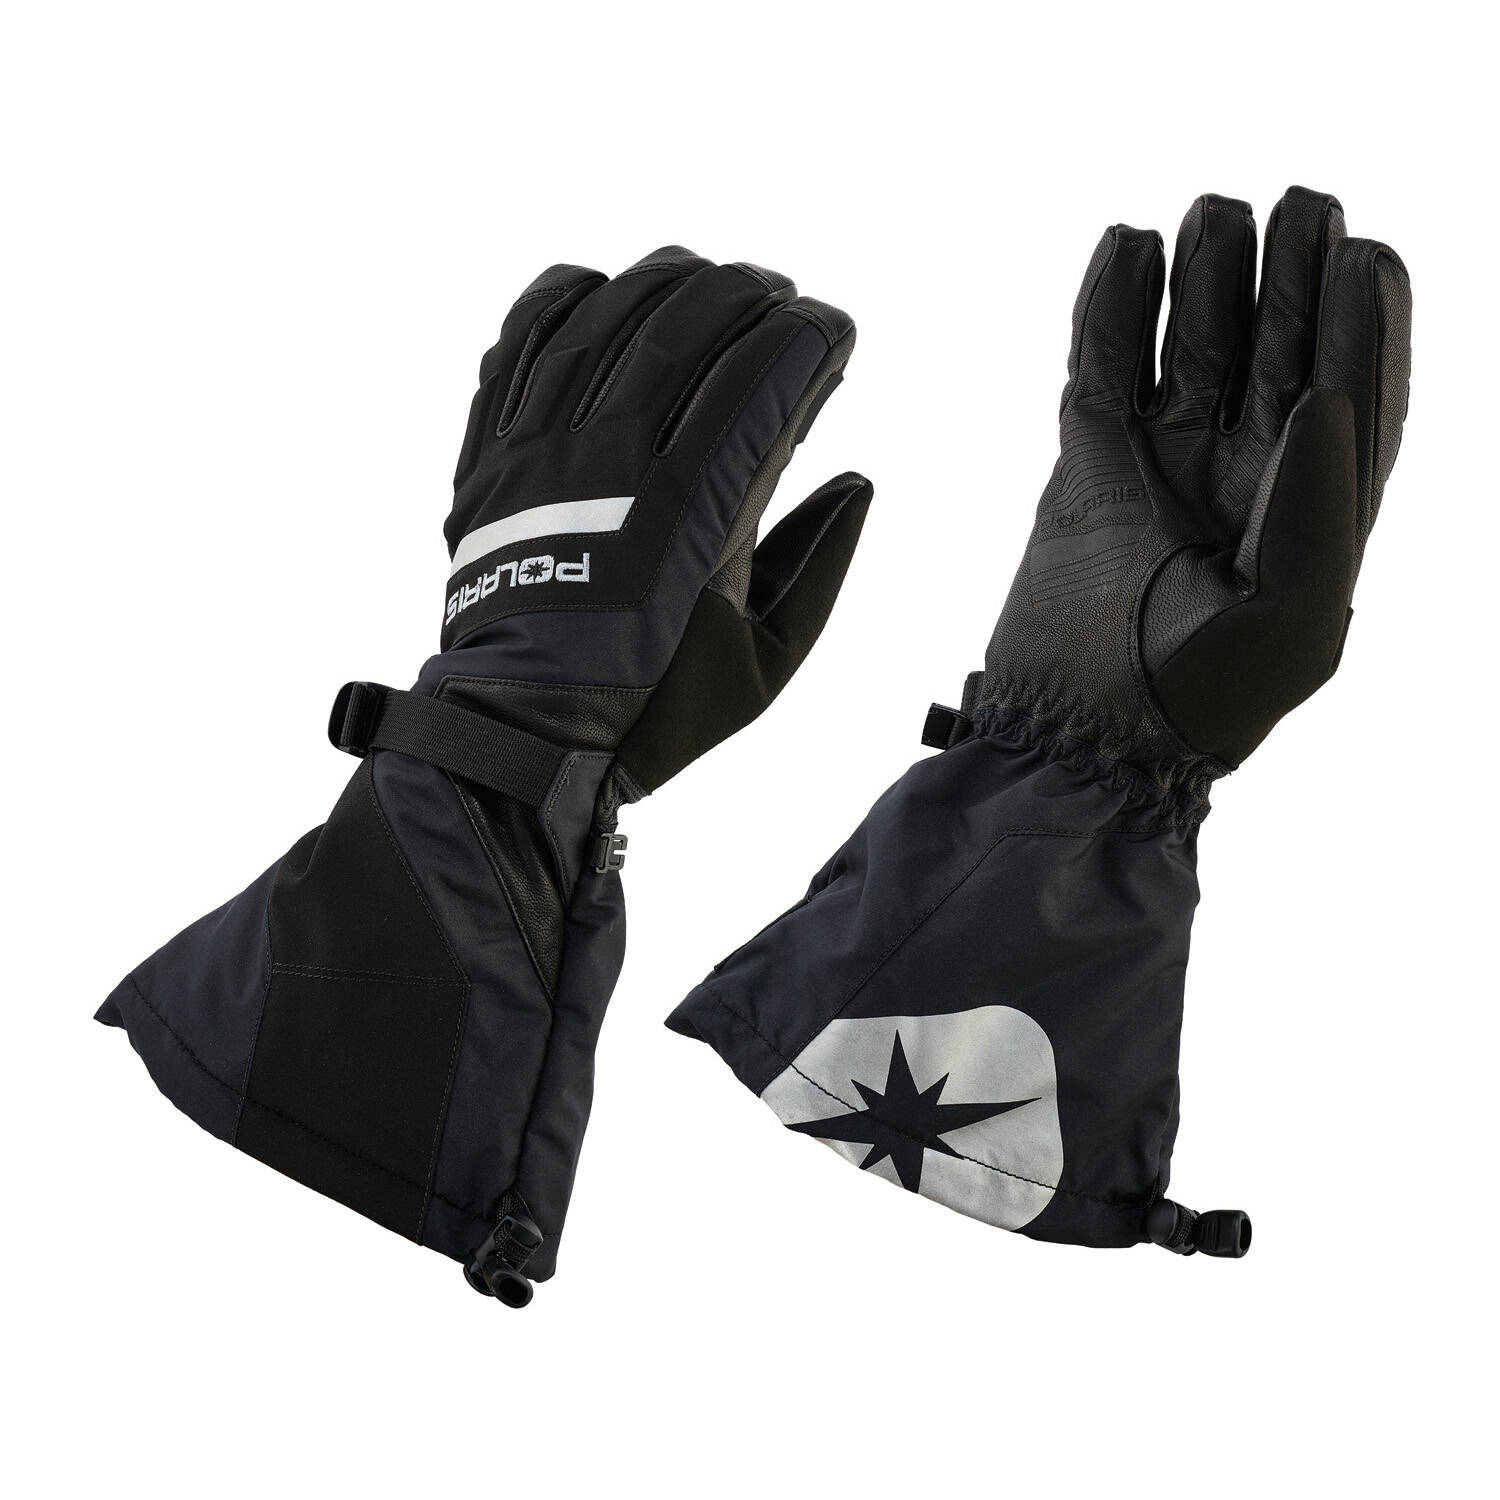 Men's Level 3 Trail Glove with 3M® Thinsulate®, Black